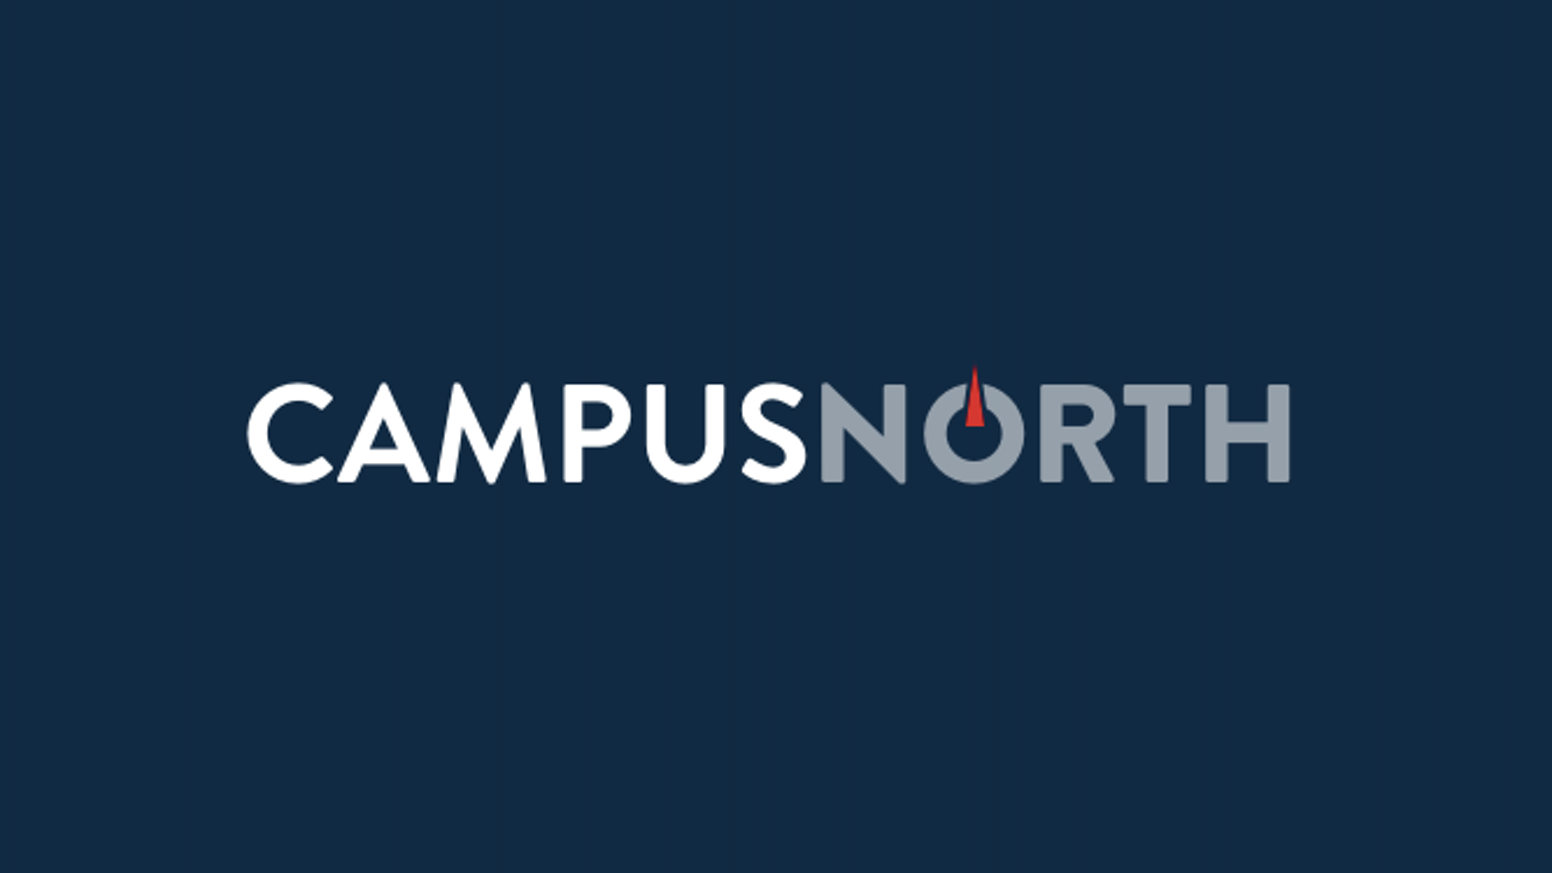 Campus North - The Home of Startups in the North of England by Paul